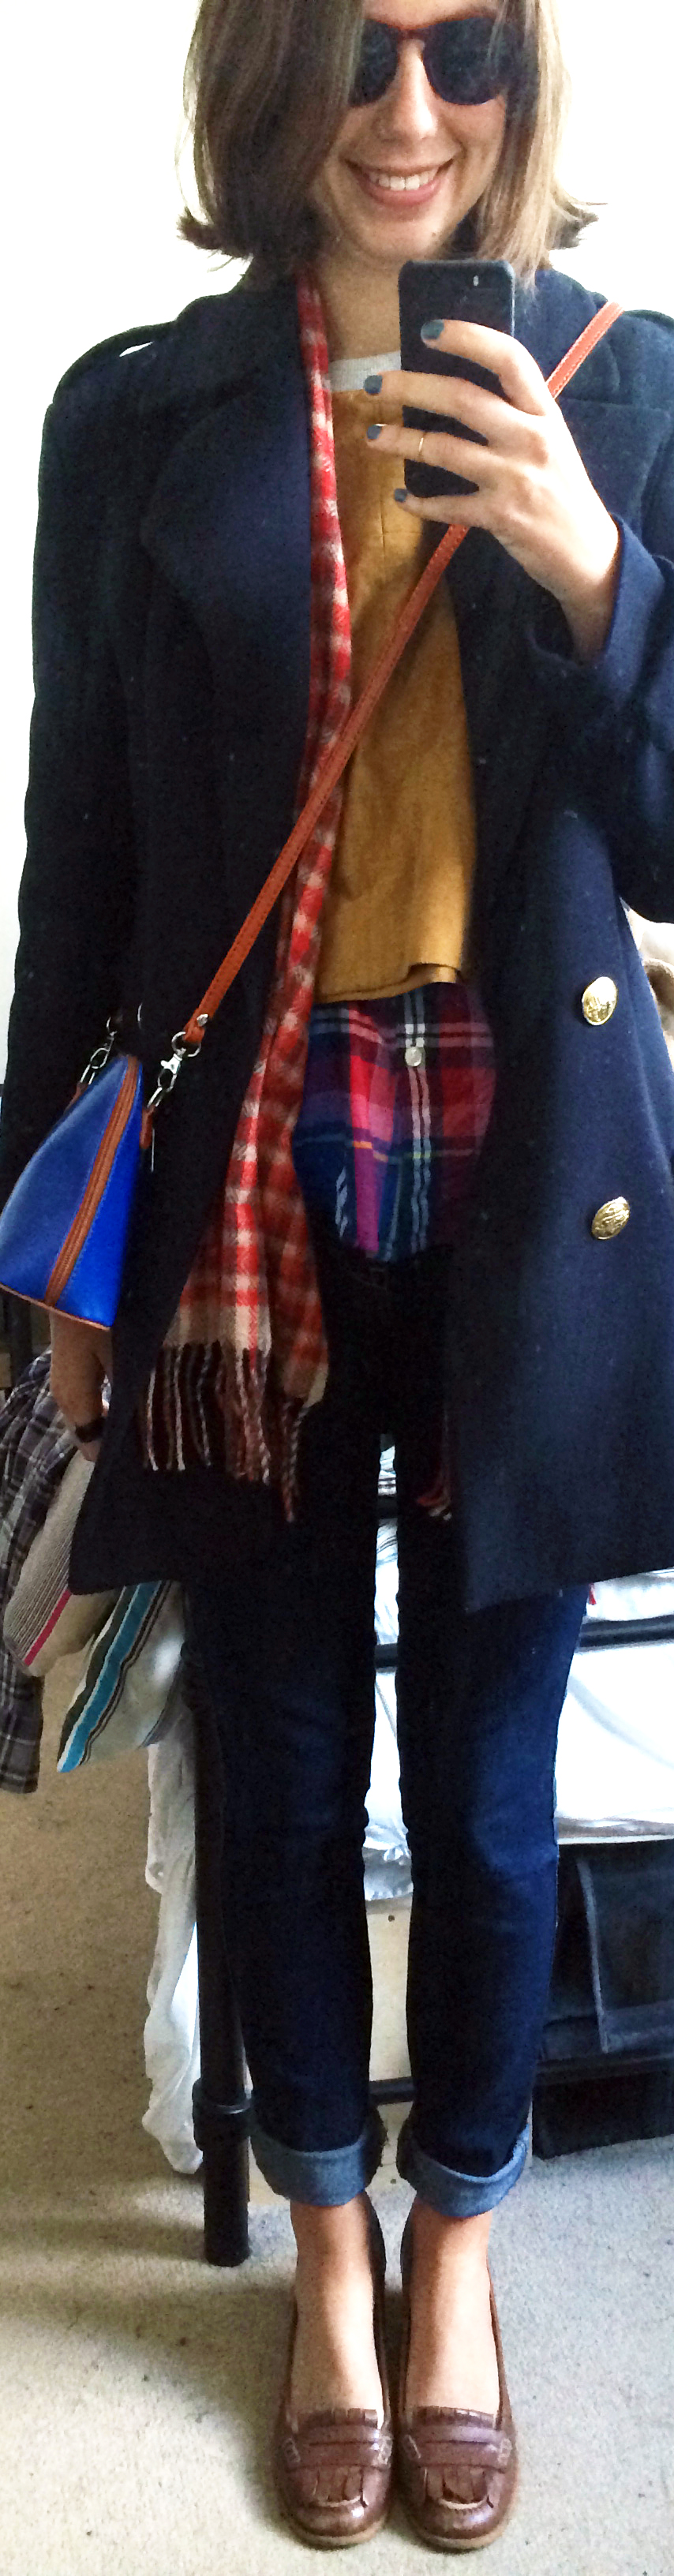 Skinny Jeans ,  Brown Loafers ,  Flannel Button-Down ,  Colorblock Pullover ,  Navy Pea Coat ,  Crossbody Bag